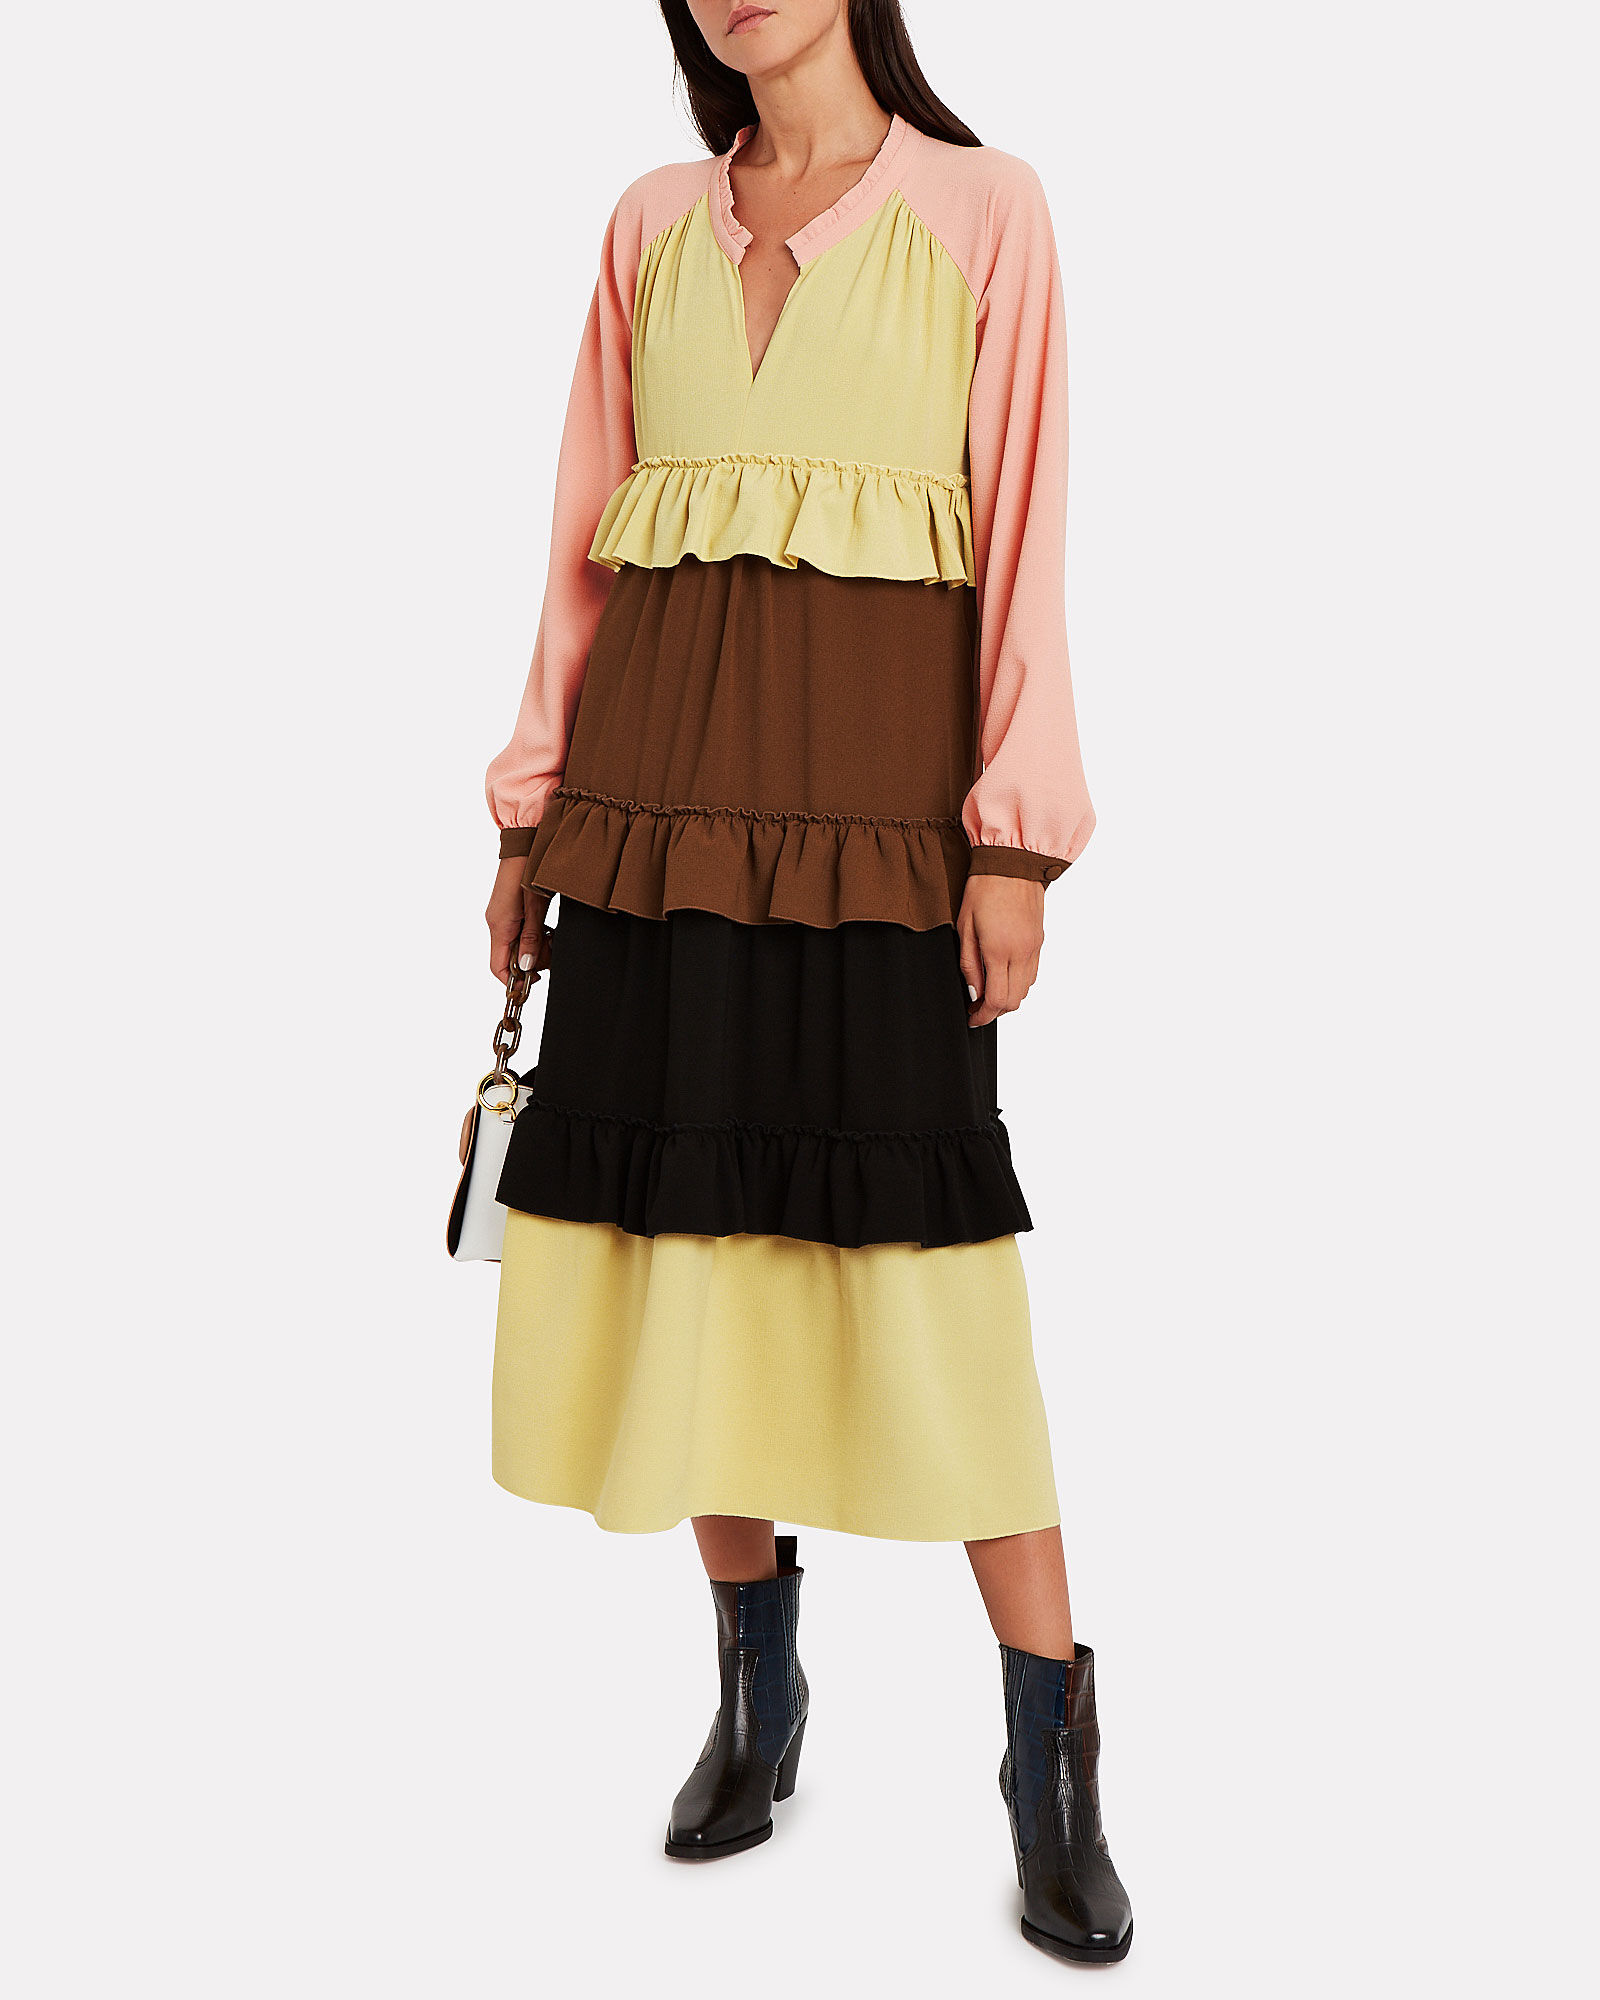 Jeanne Tiered Colorblocked Dress, PINK/YELLOW/BROWN, hi-res